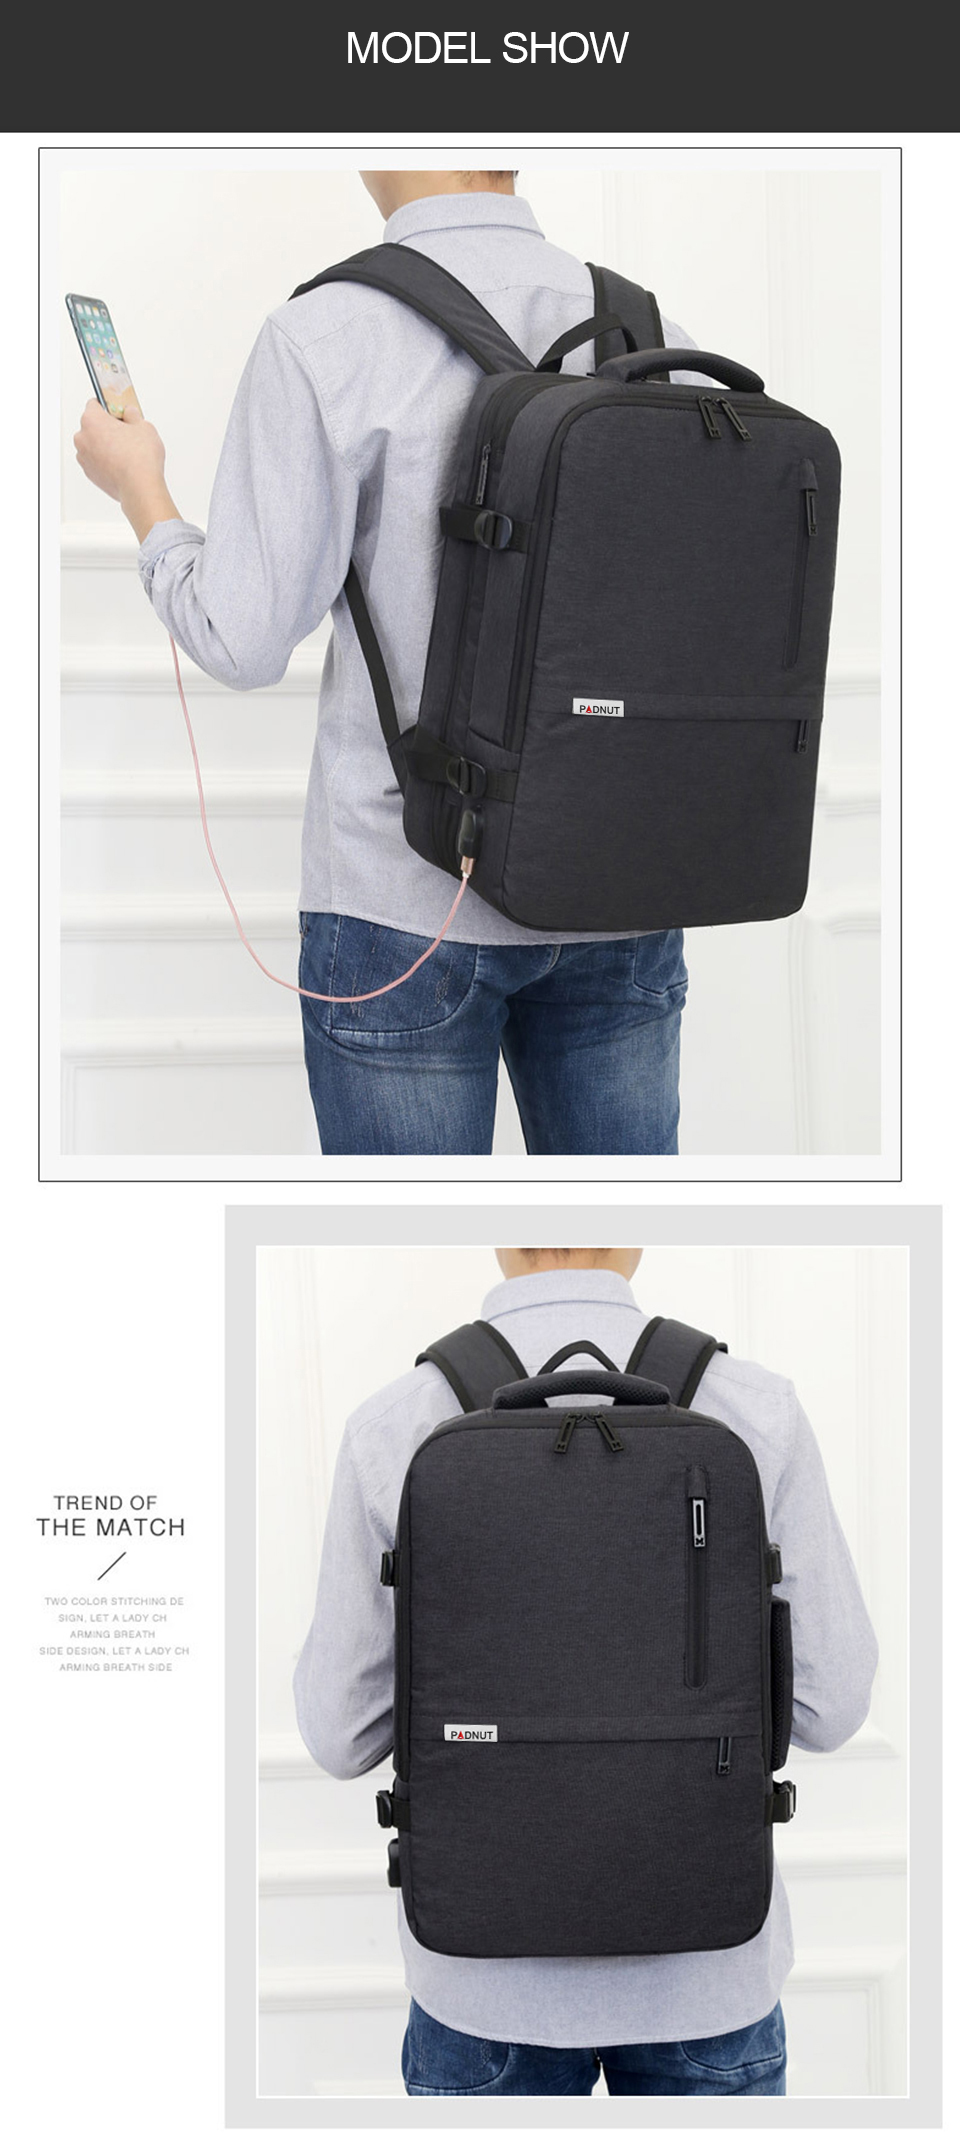 17''-Laptop-Backpack-Travel-Bag-Women-Men-Waterproof-75L-Large-Capacity-Bagpack-Anti-theft-Male-Female-Outdoor-15.6-Back-Packing_09_07